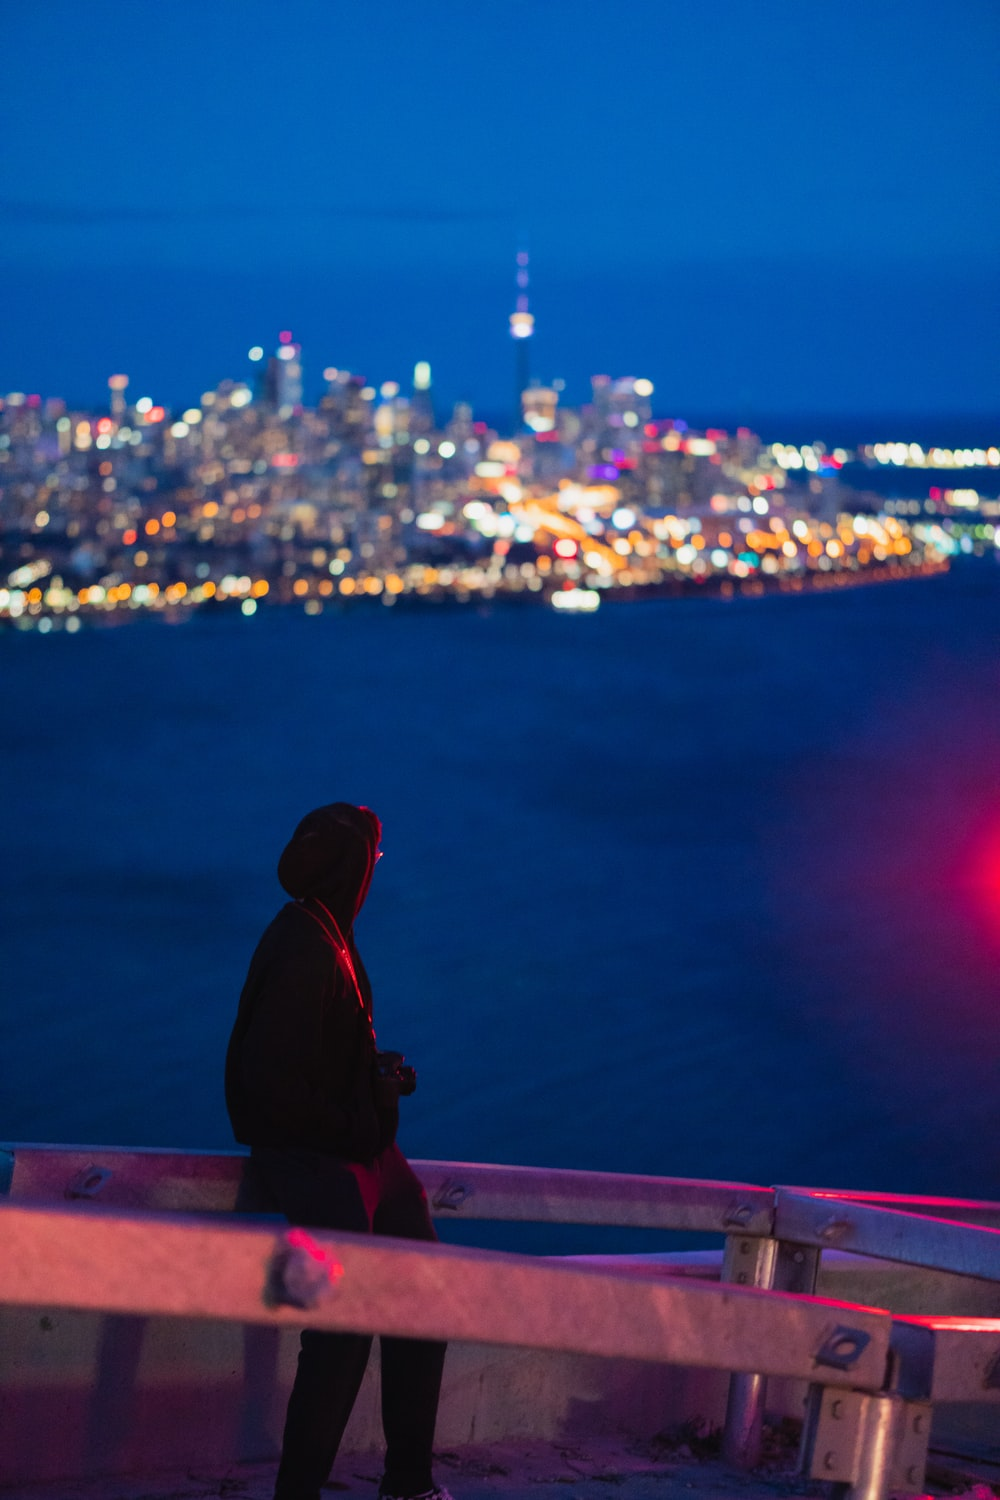 man in black hoodie sitting on brown wooden bench looking at city lights during night time